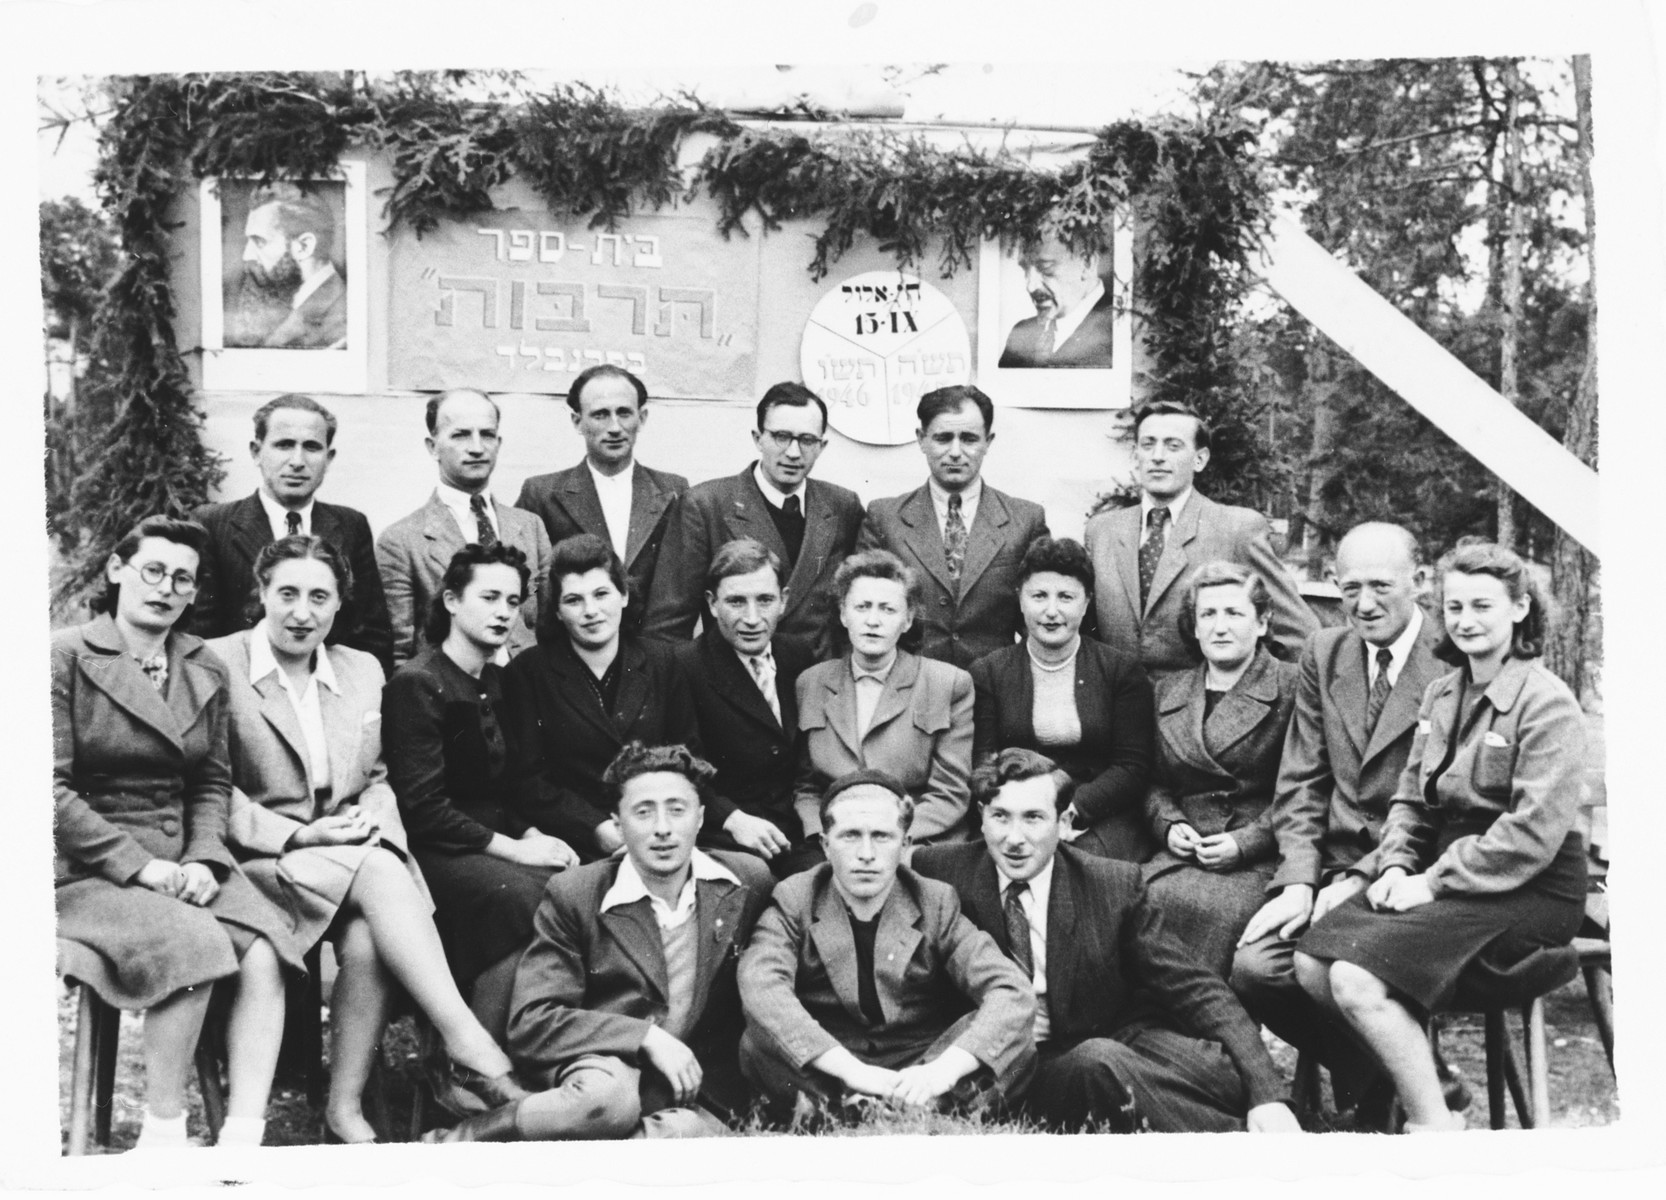 Jewish DPs gather in front of a sign celebrating the Hebrew Tarbut school in the Foehrenwald displaced persons camp.  Among those pictured is Stanley Zektzer, seated in front lower left